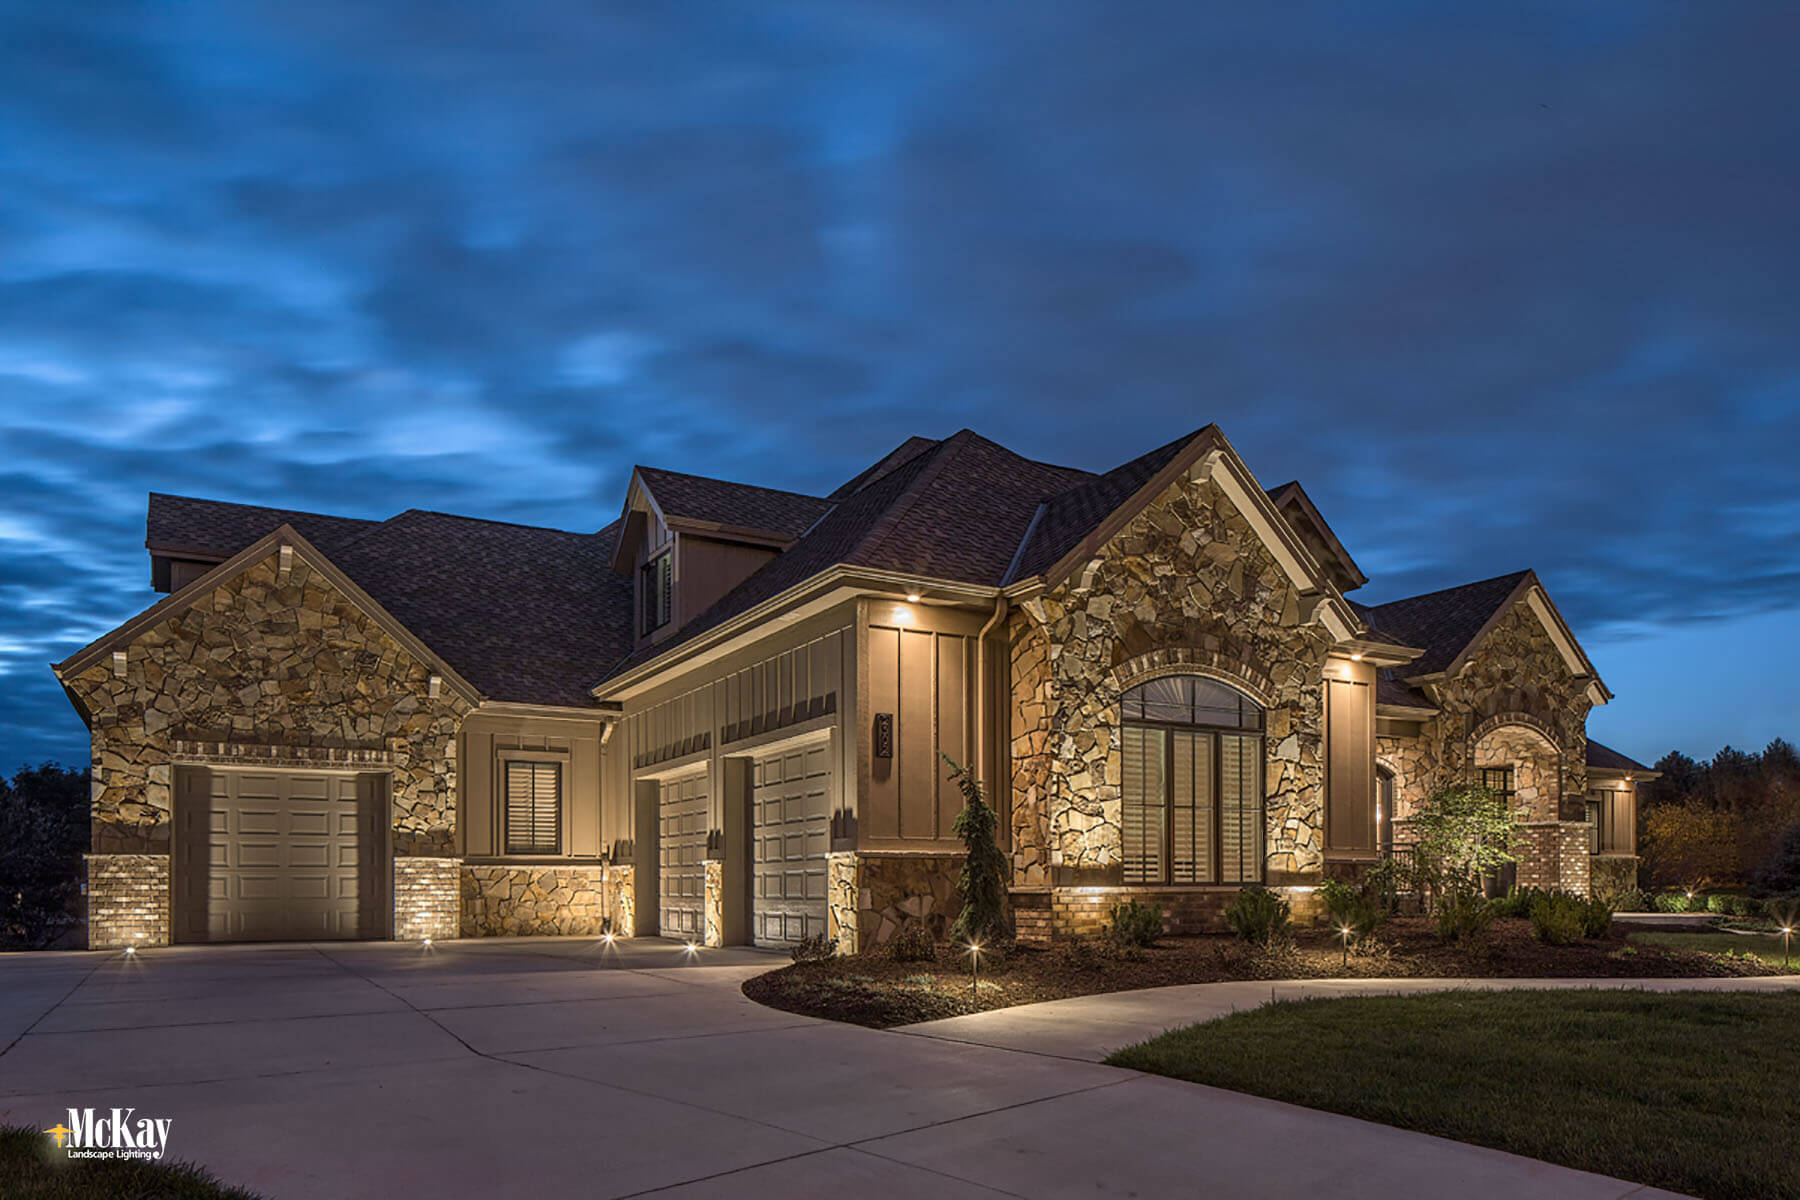 McKay Landscape Lighting was voted Omaha's best outdoor lighting company and best of houzz | click to read more about these two awards